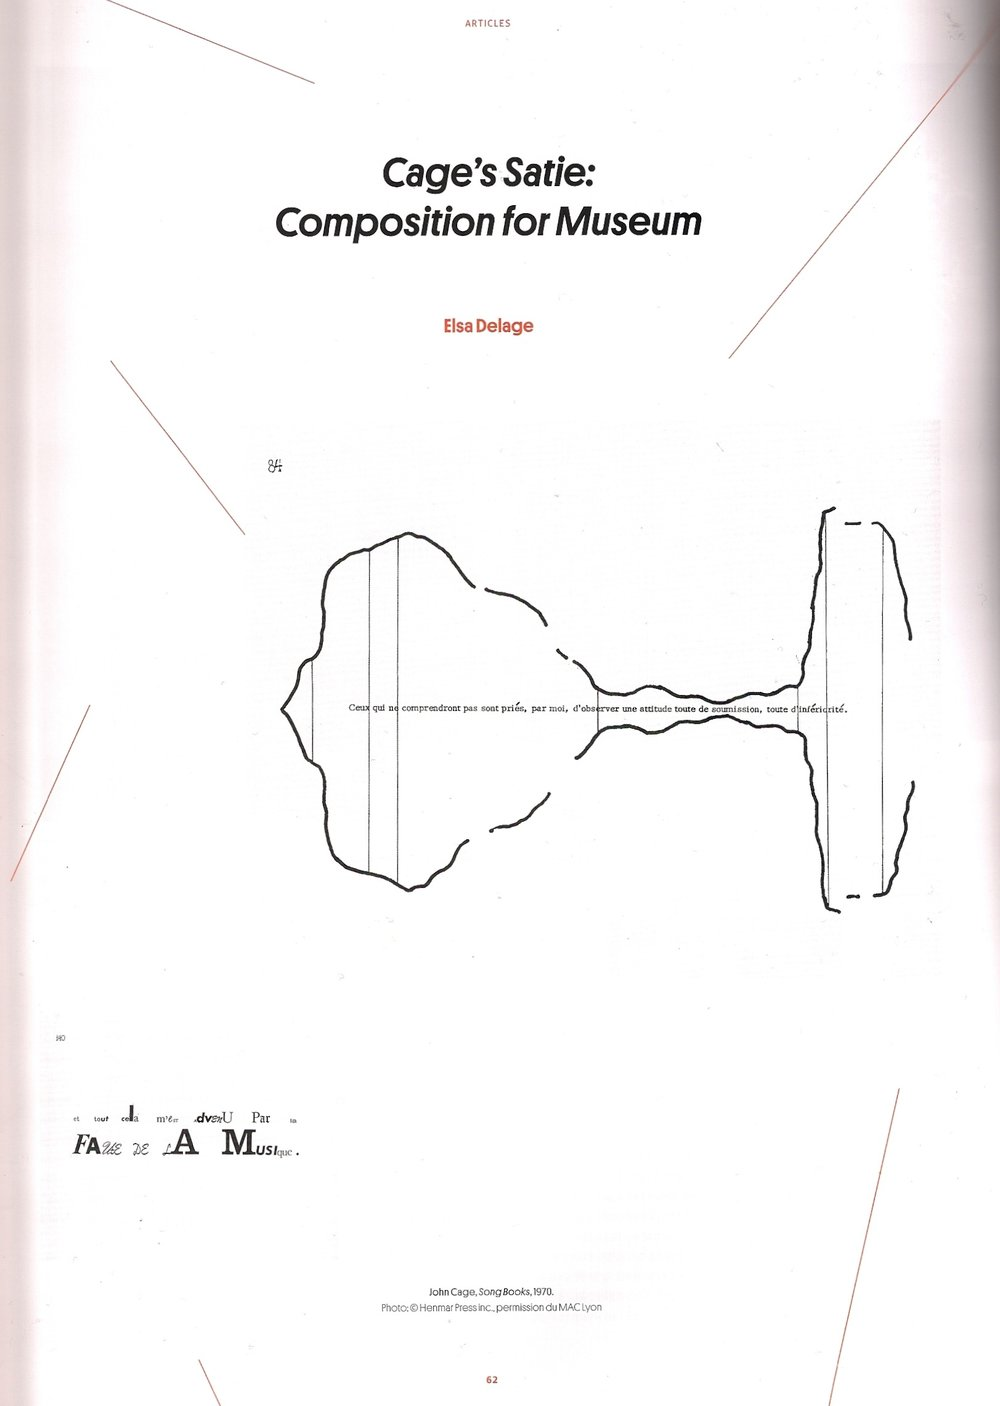 Cage's Satie composition for museum - Esse 1.jpg